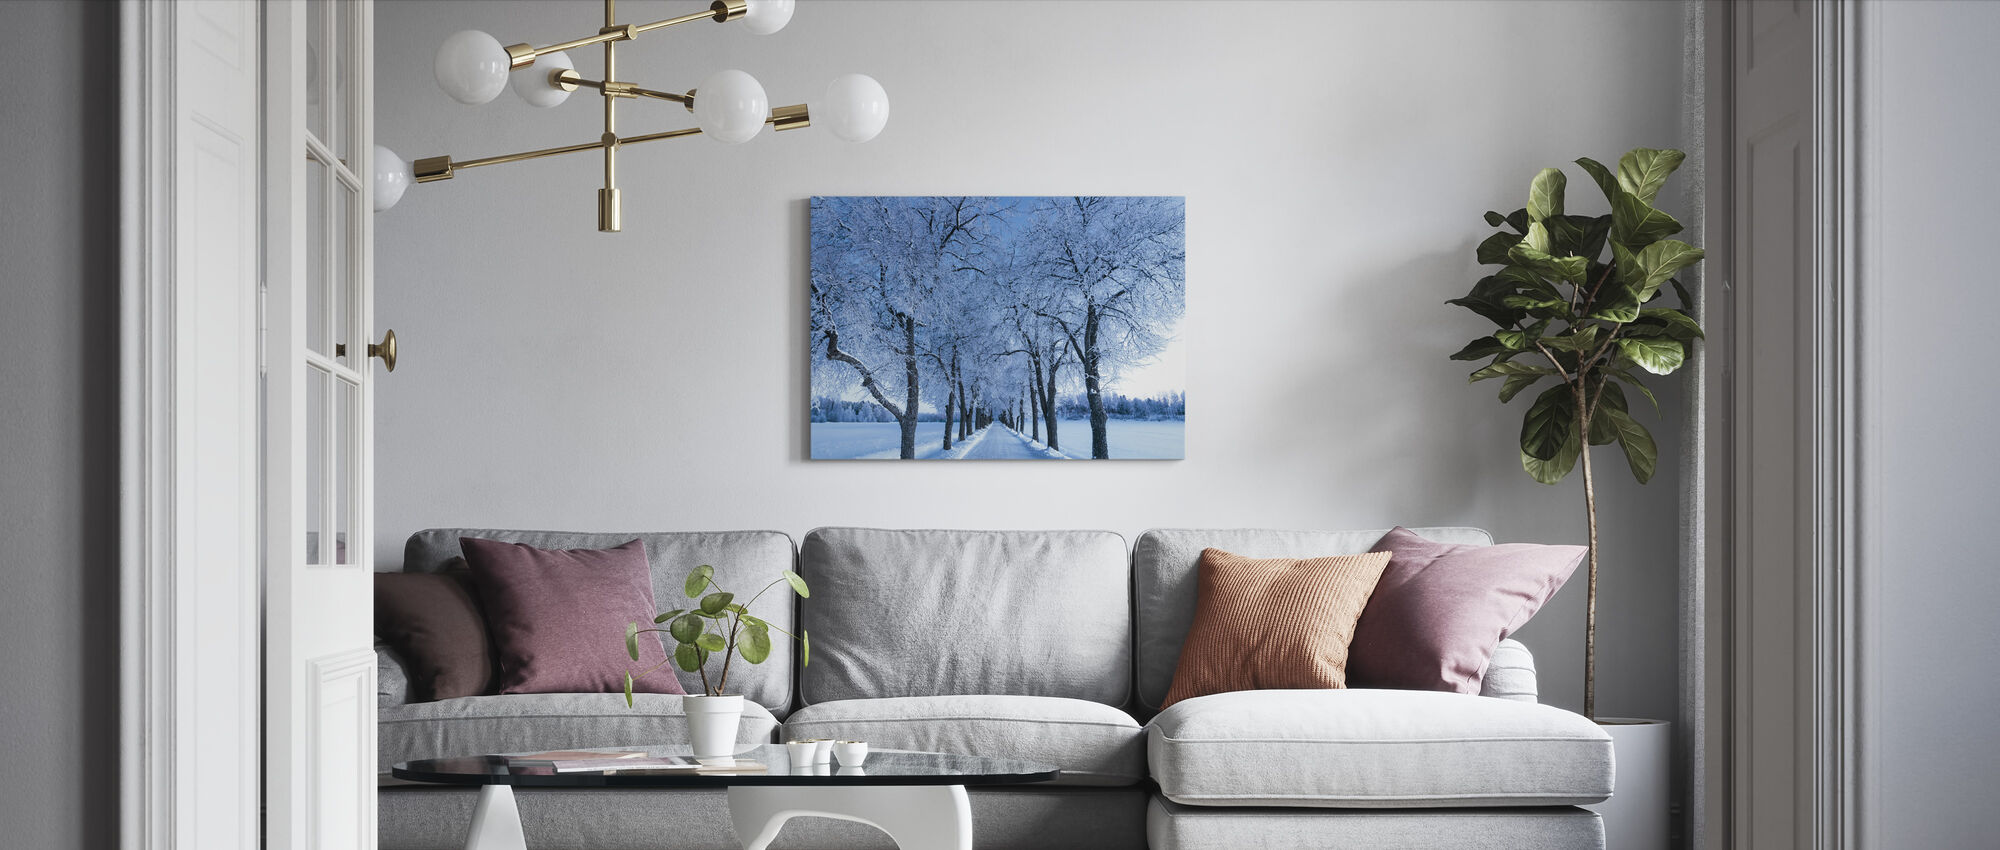 Rural Road on a Cold Day, Sweden - Canvas print - Living Room